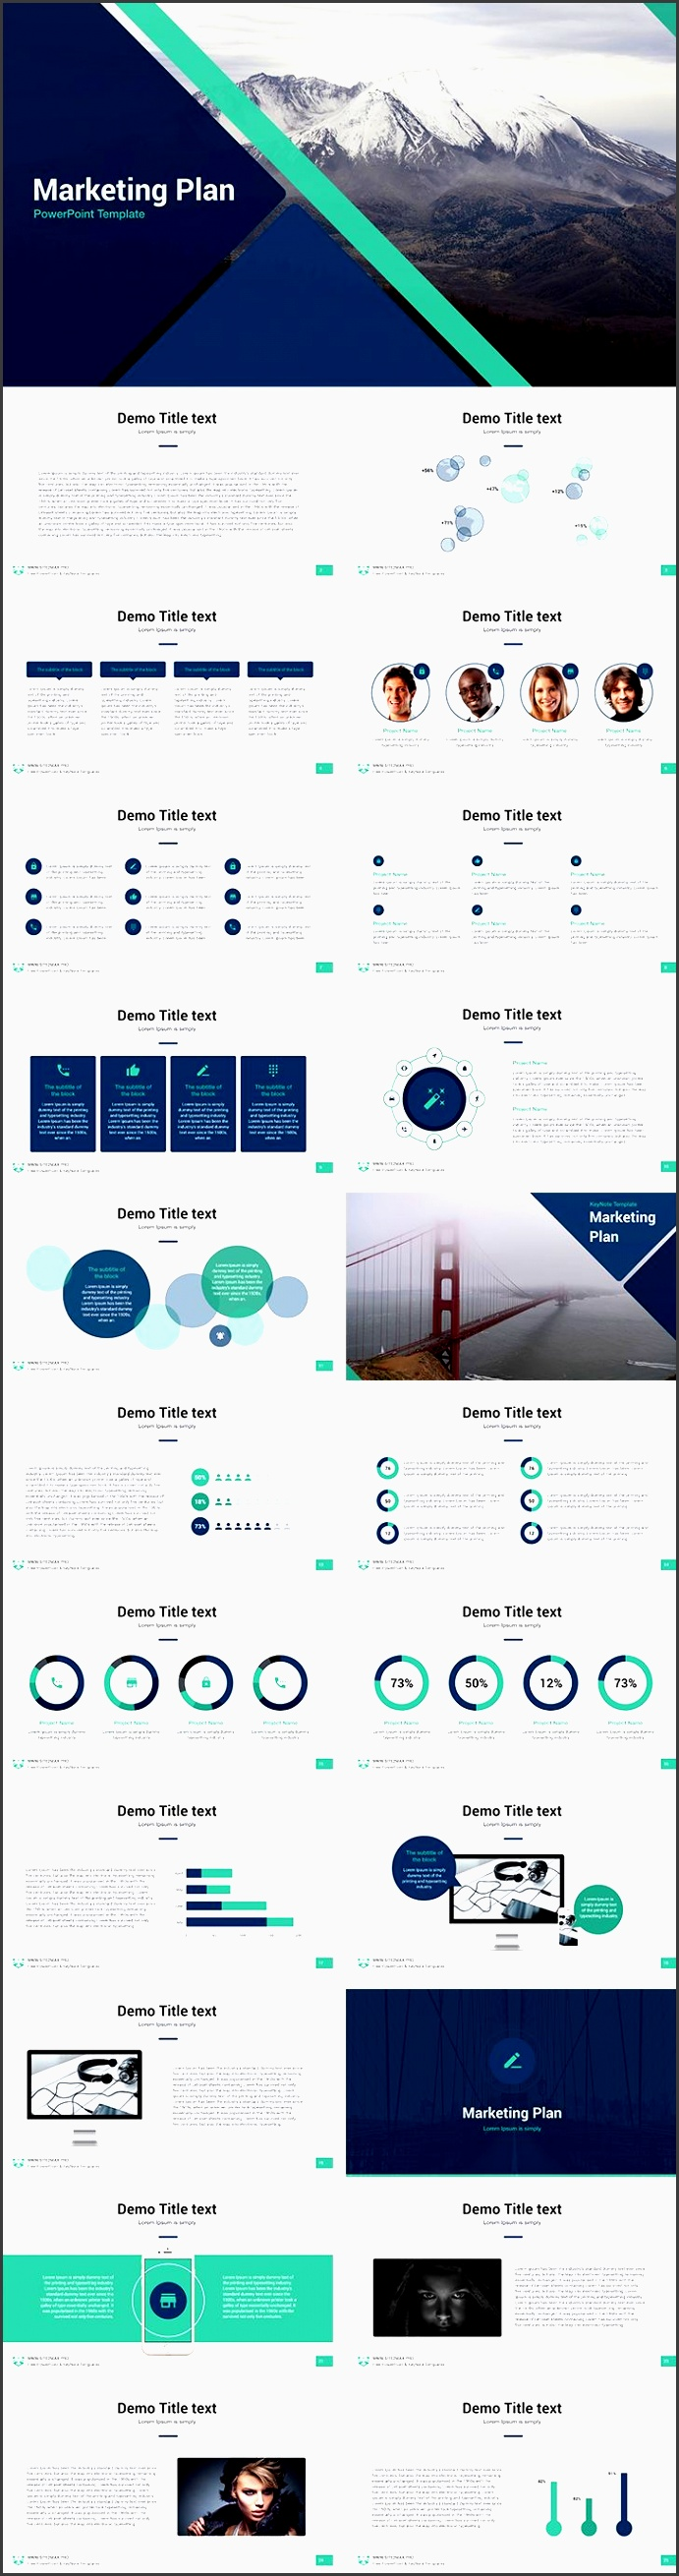 the marketing plan free powerpoint template is 26 unique slides in two formats built